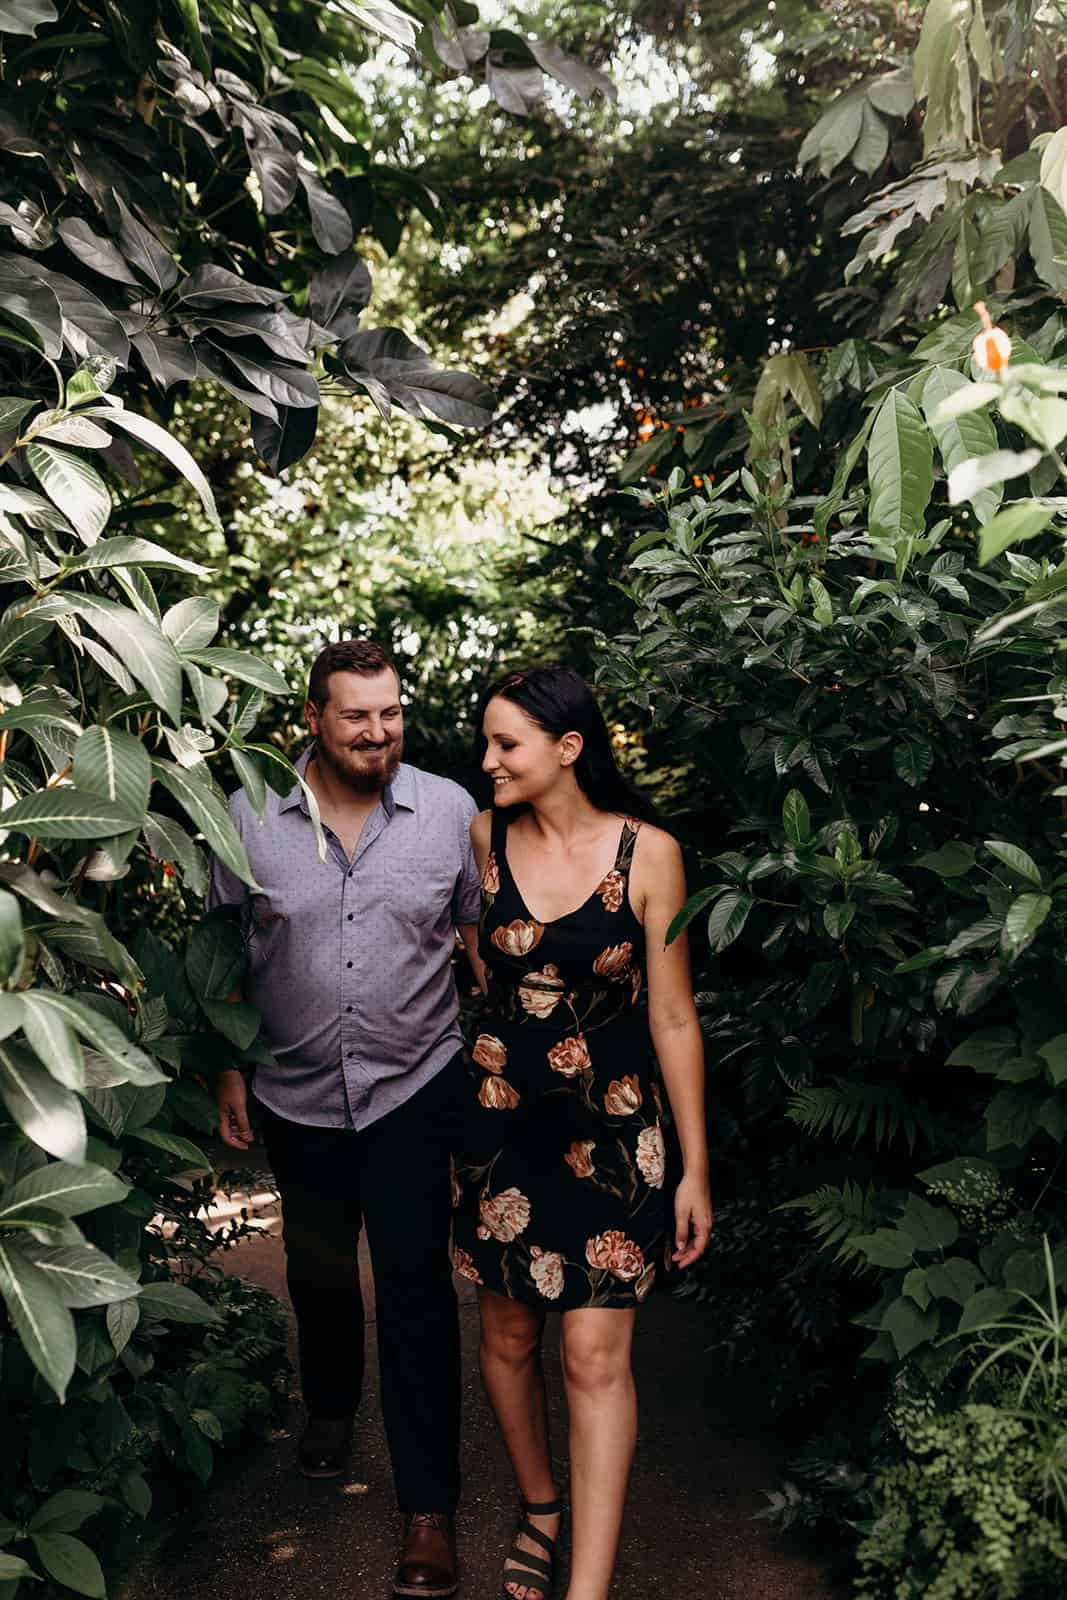 couple walking through plants at Phipps Conservatory